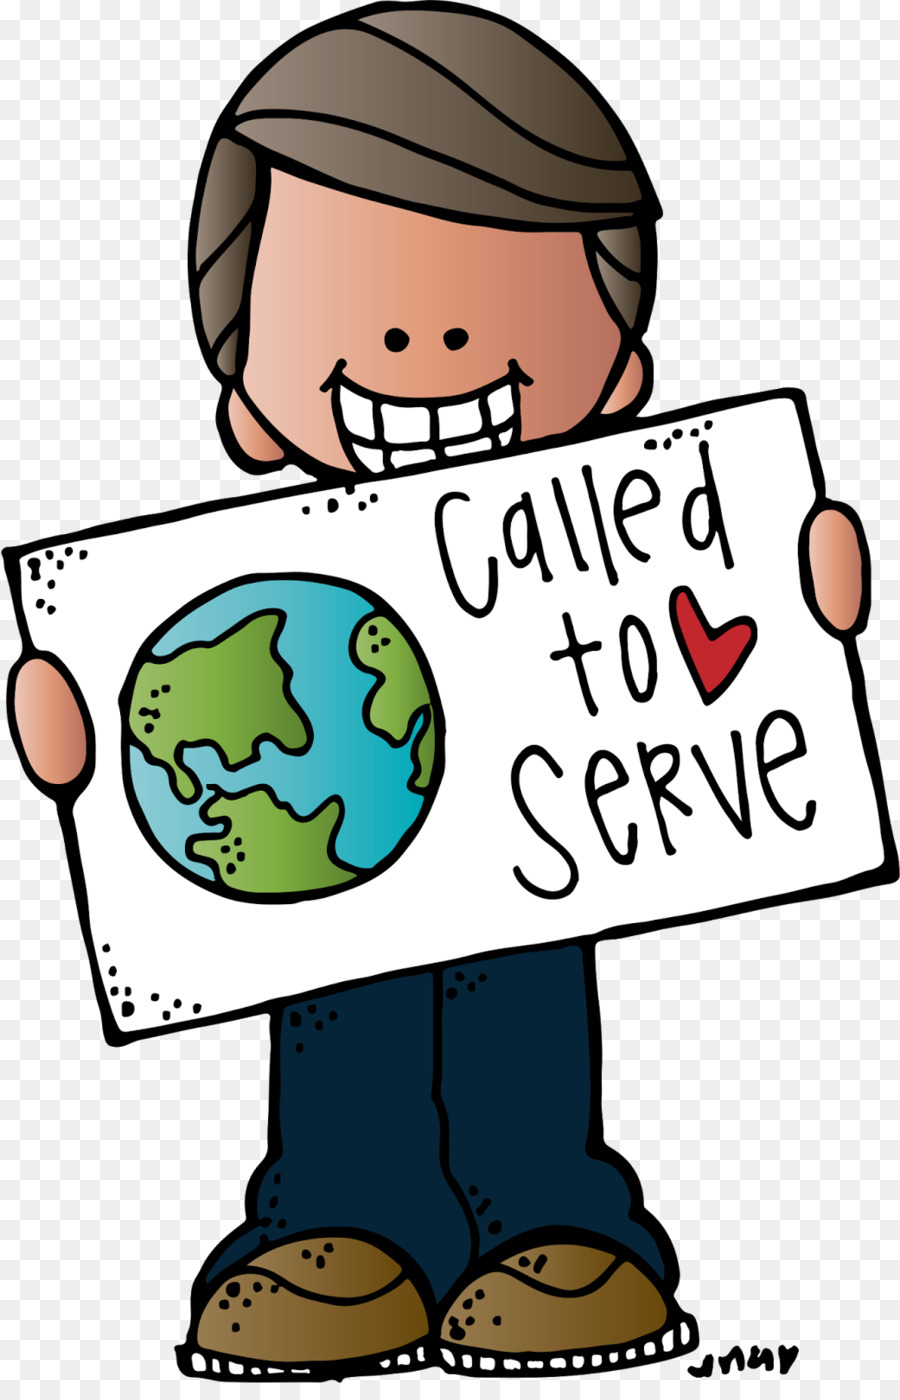 Boy cartoon ball communication. Missionary clipart called to serve